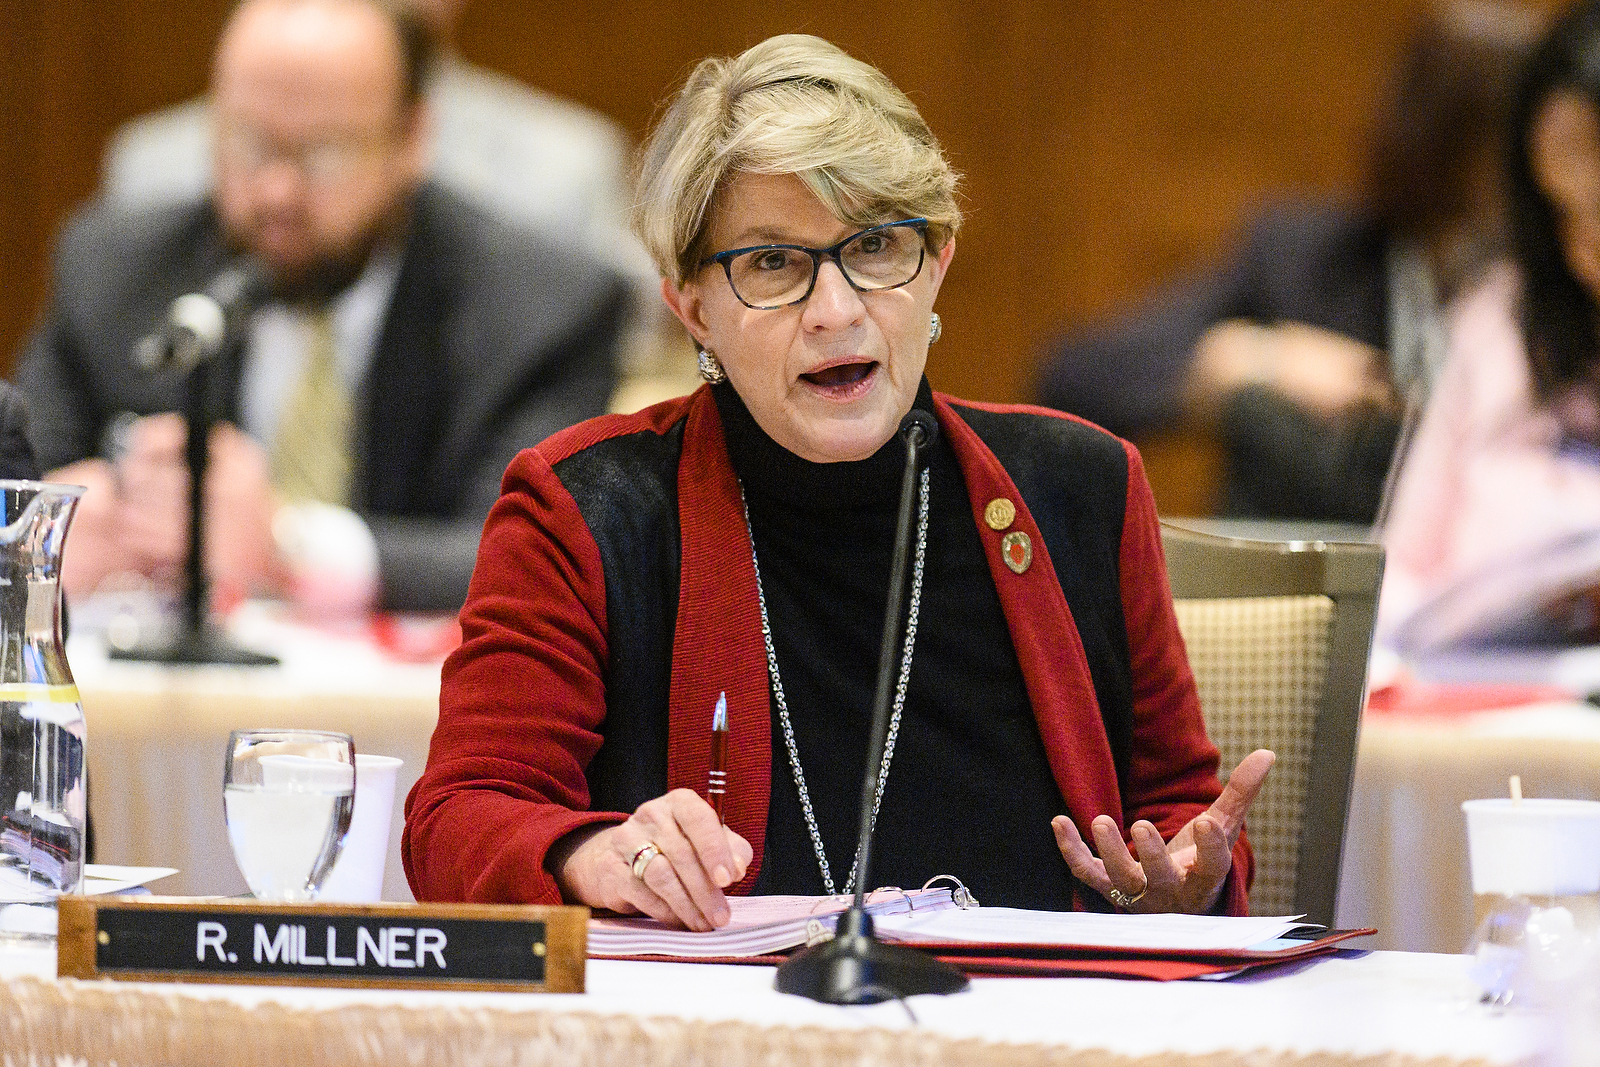 UW System Regent Regina Millner speaks at the UW System Board of Regents meeting hosted at Union South at the University of Wisconsin-Madison on Feb. 7, 2019. (Photo by Bryce Richter /UW-Madison)